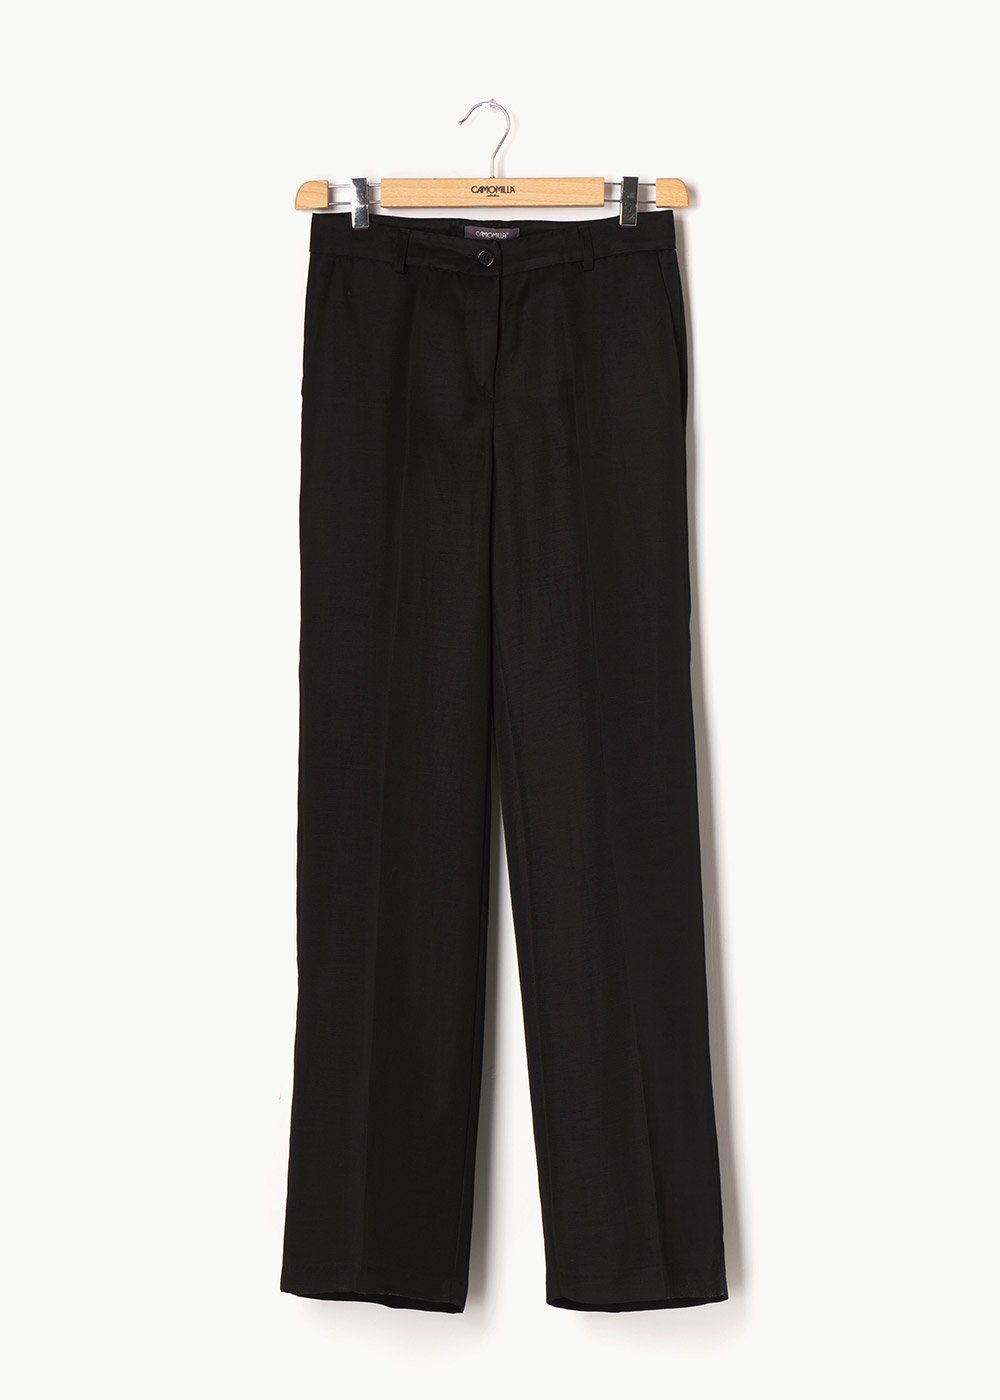 Giorgia trousers in linen blend fabric - Black - Woman